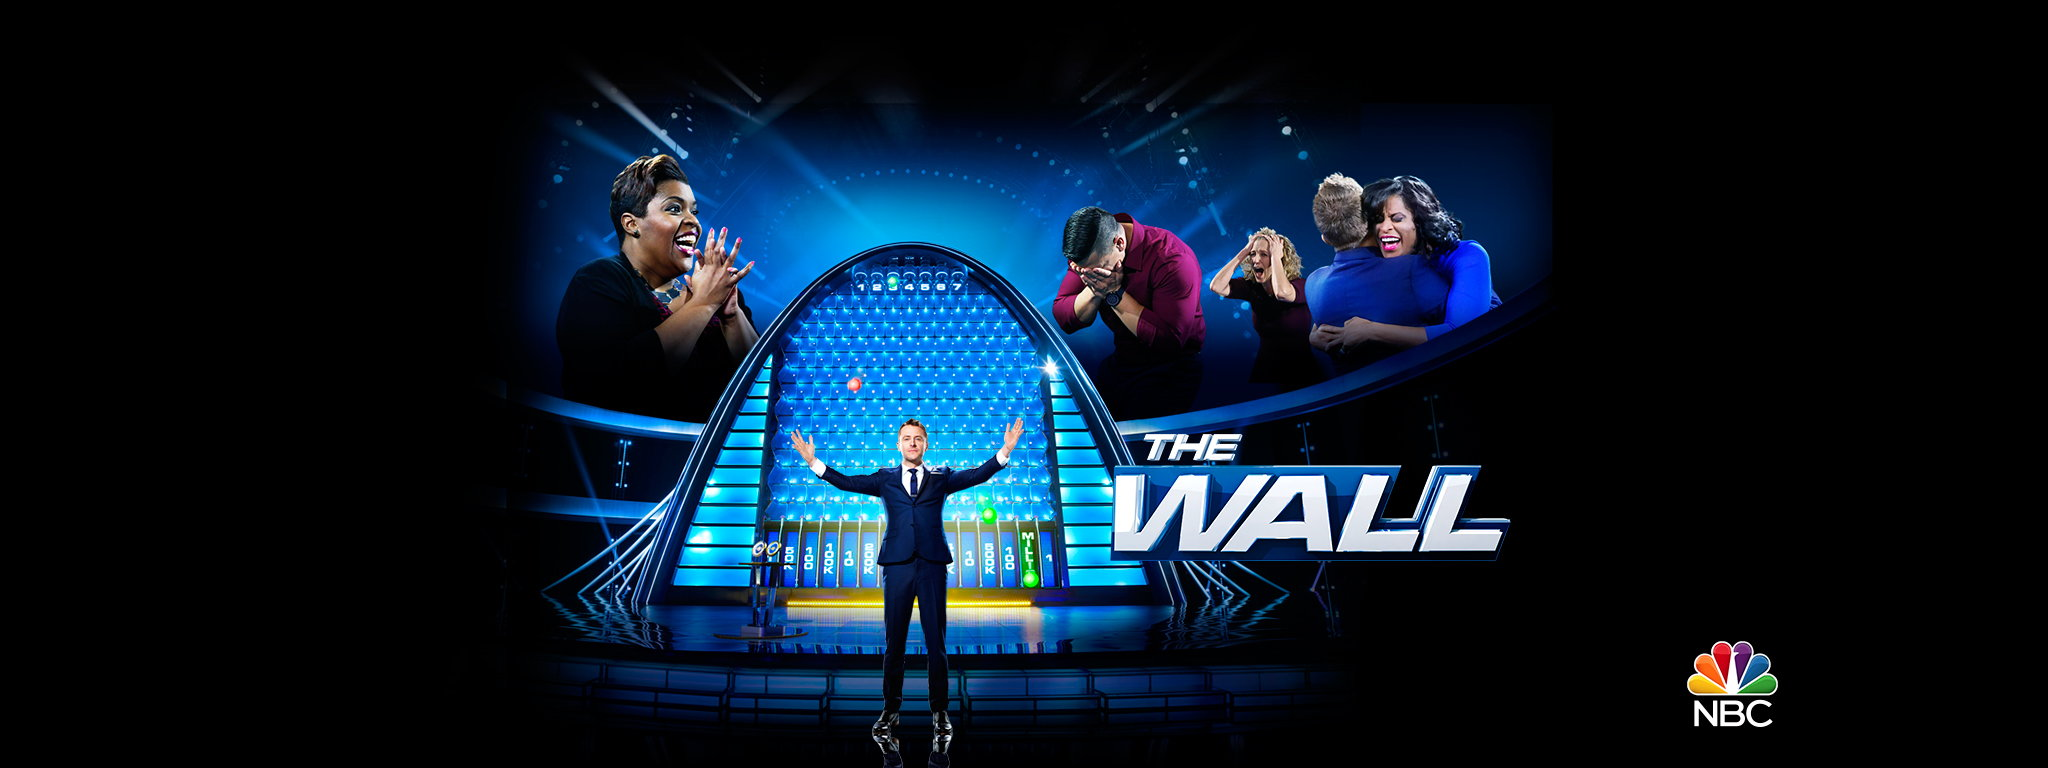 The wall release date in Perth